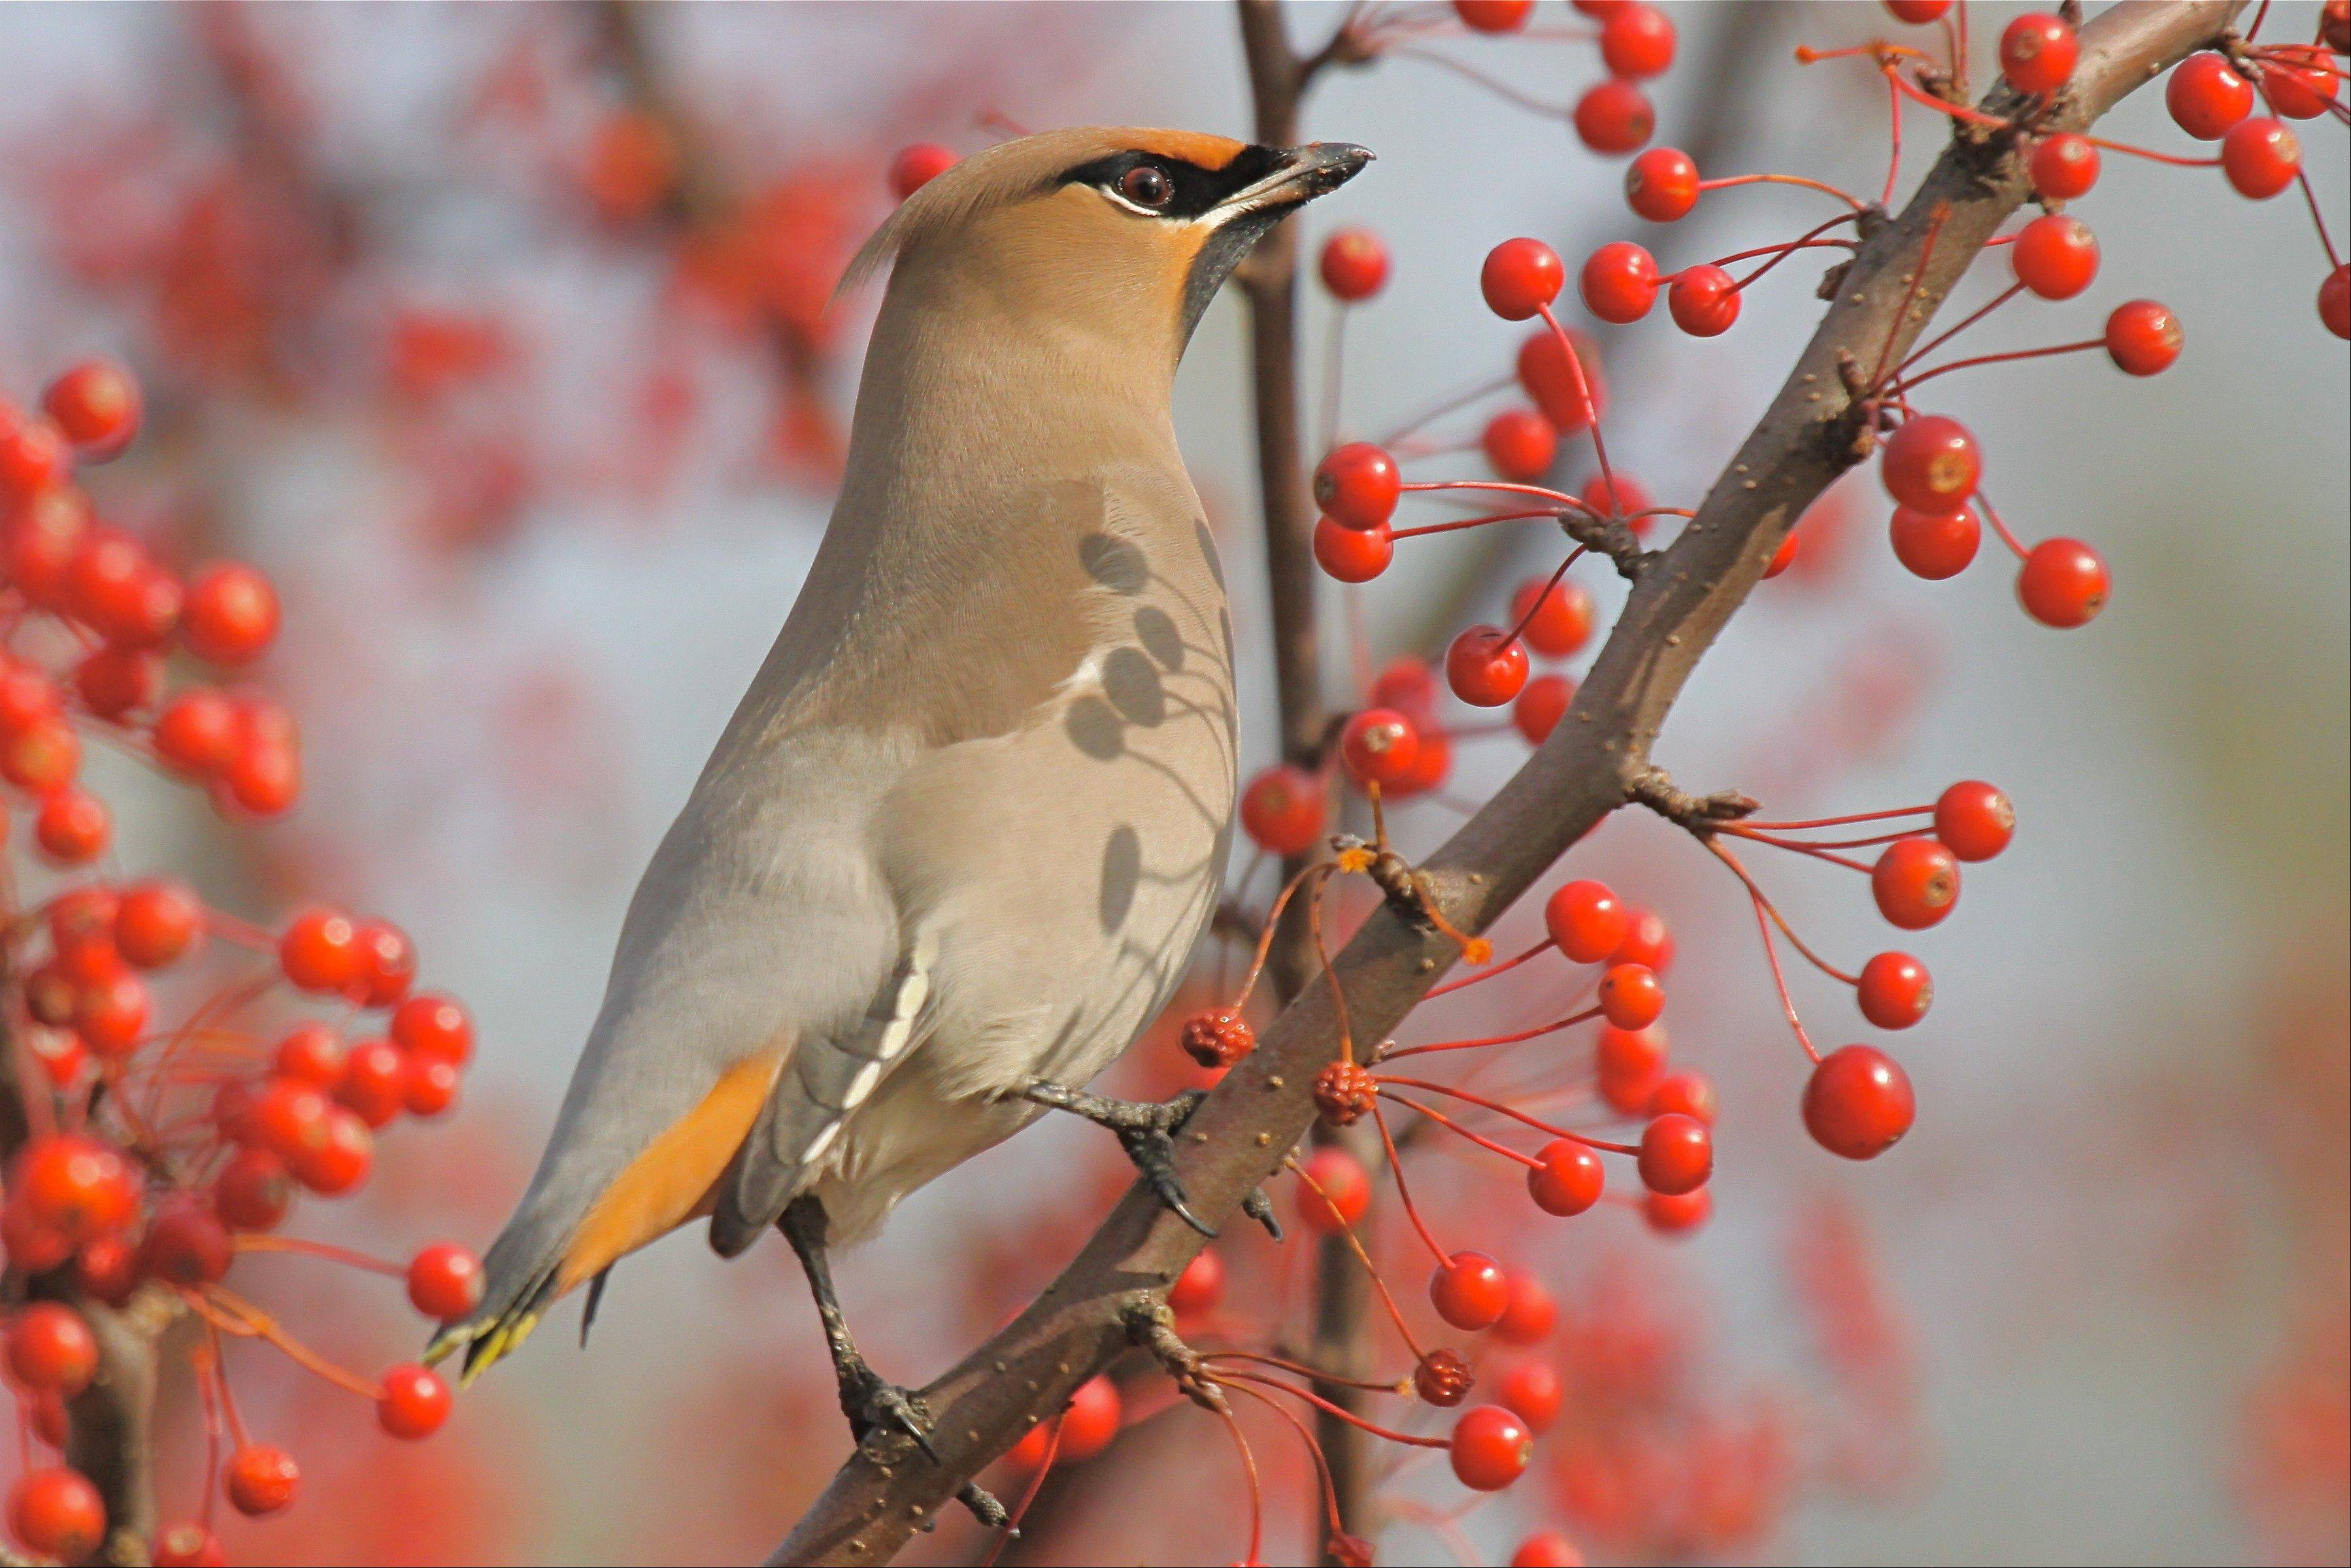 This stunning Bohemian waxwing was mingling with a flock of cedar waxwings at Chicago Botanic Garden in November.